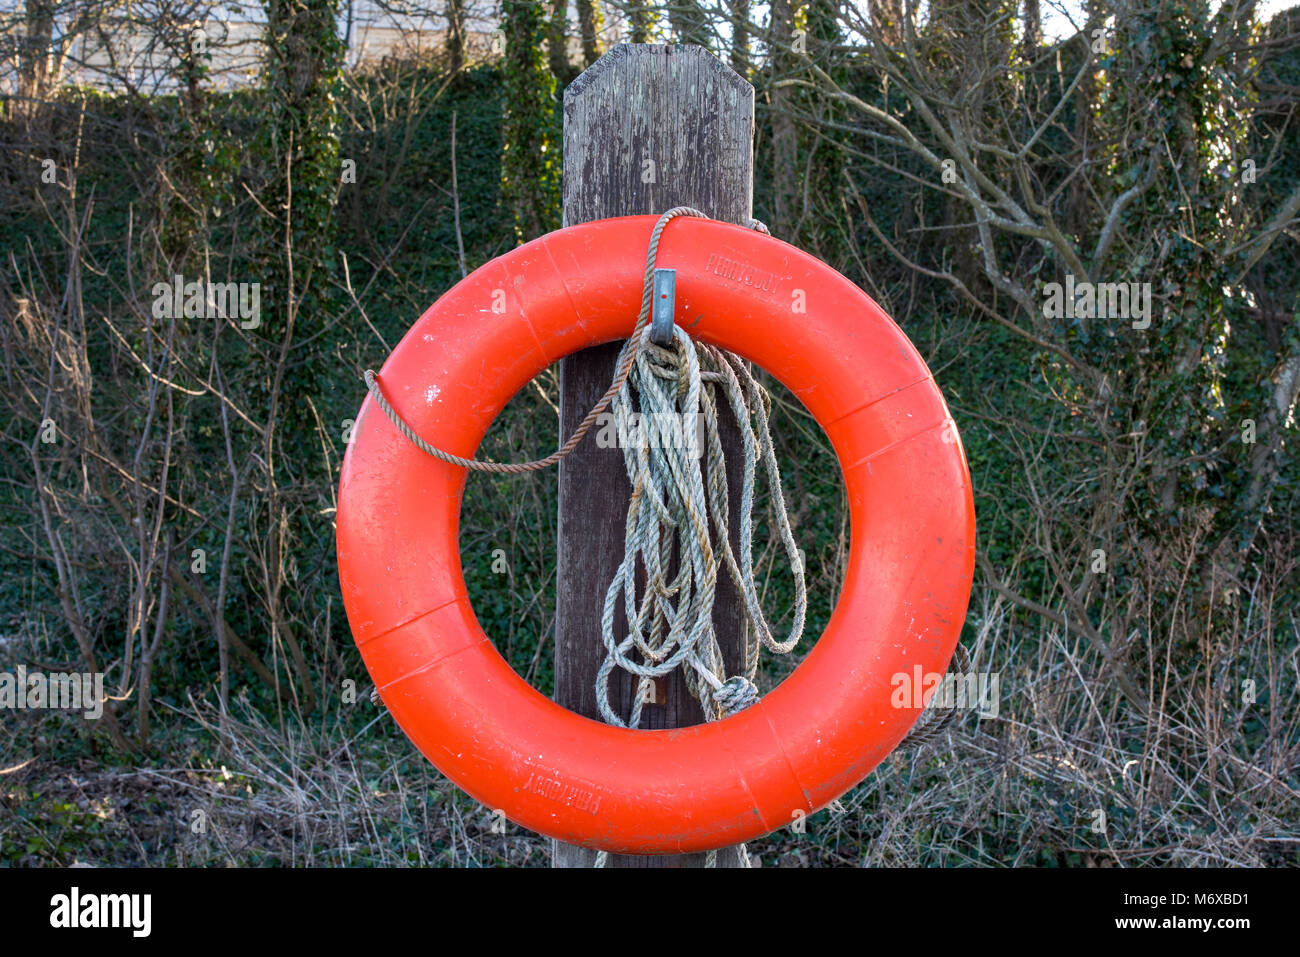 an orange rubber or plastic lifebuoy or perrybouy on a stand at the seaside for thtowing into water to save lives Stock Photo